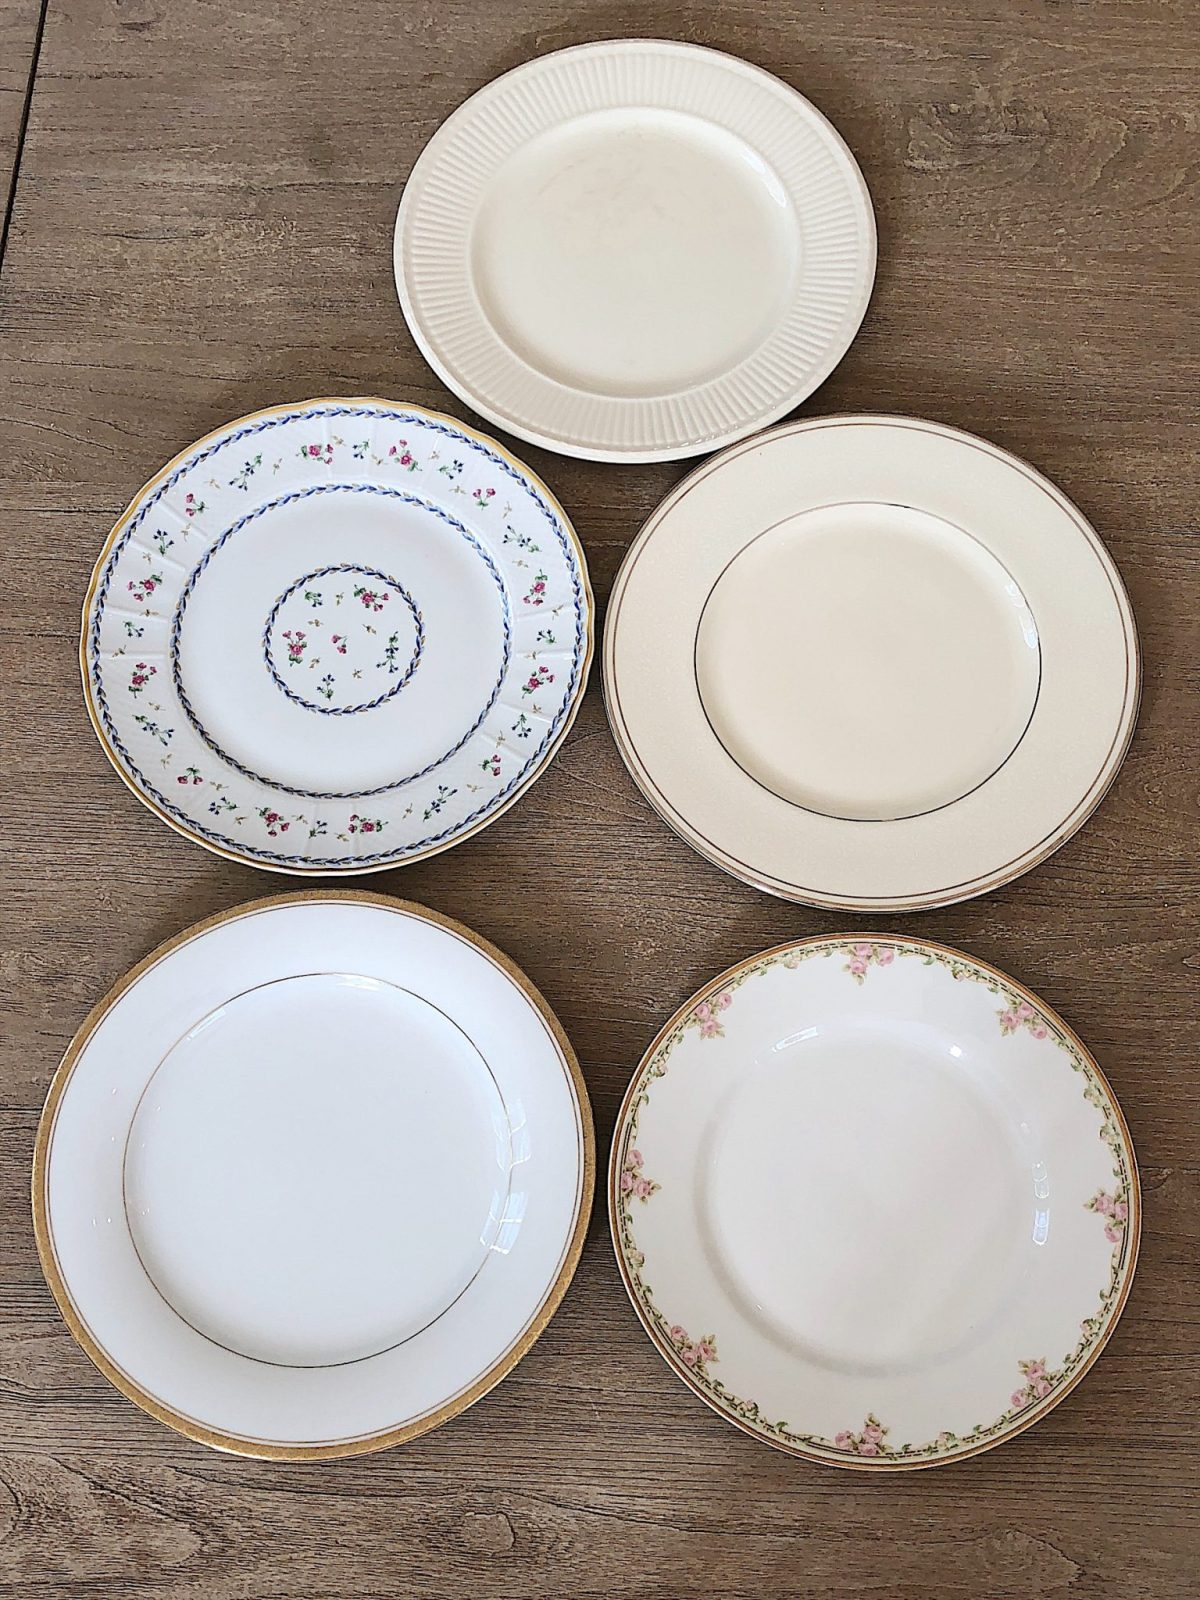 setting the table with china